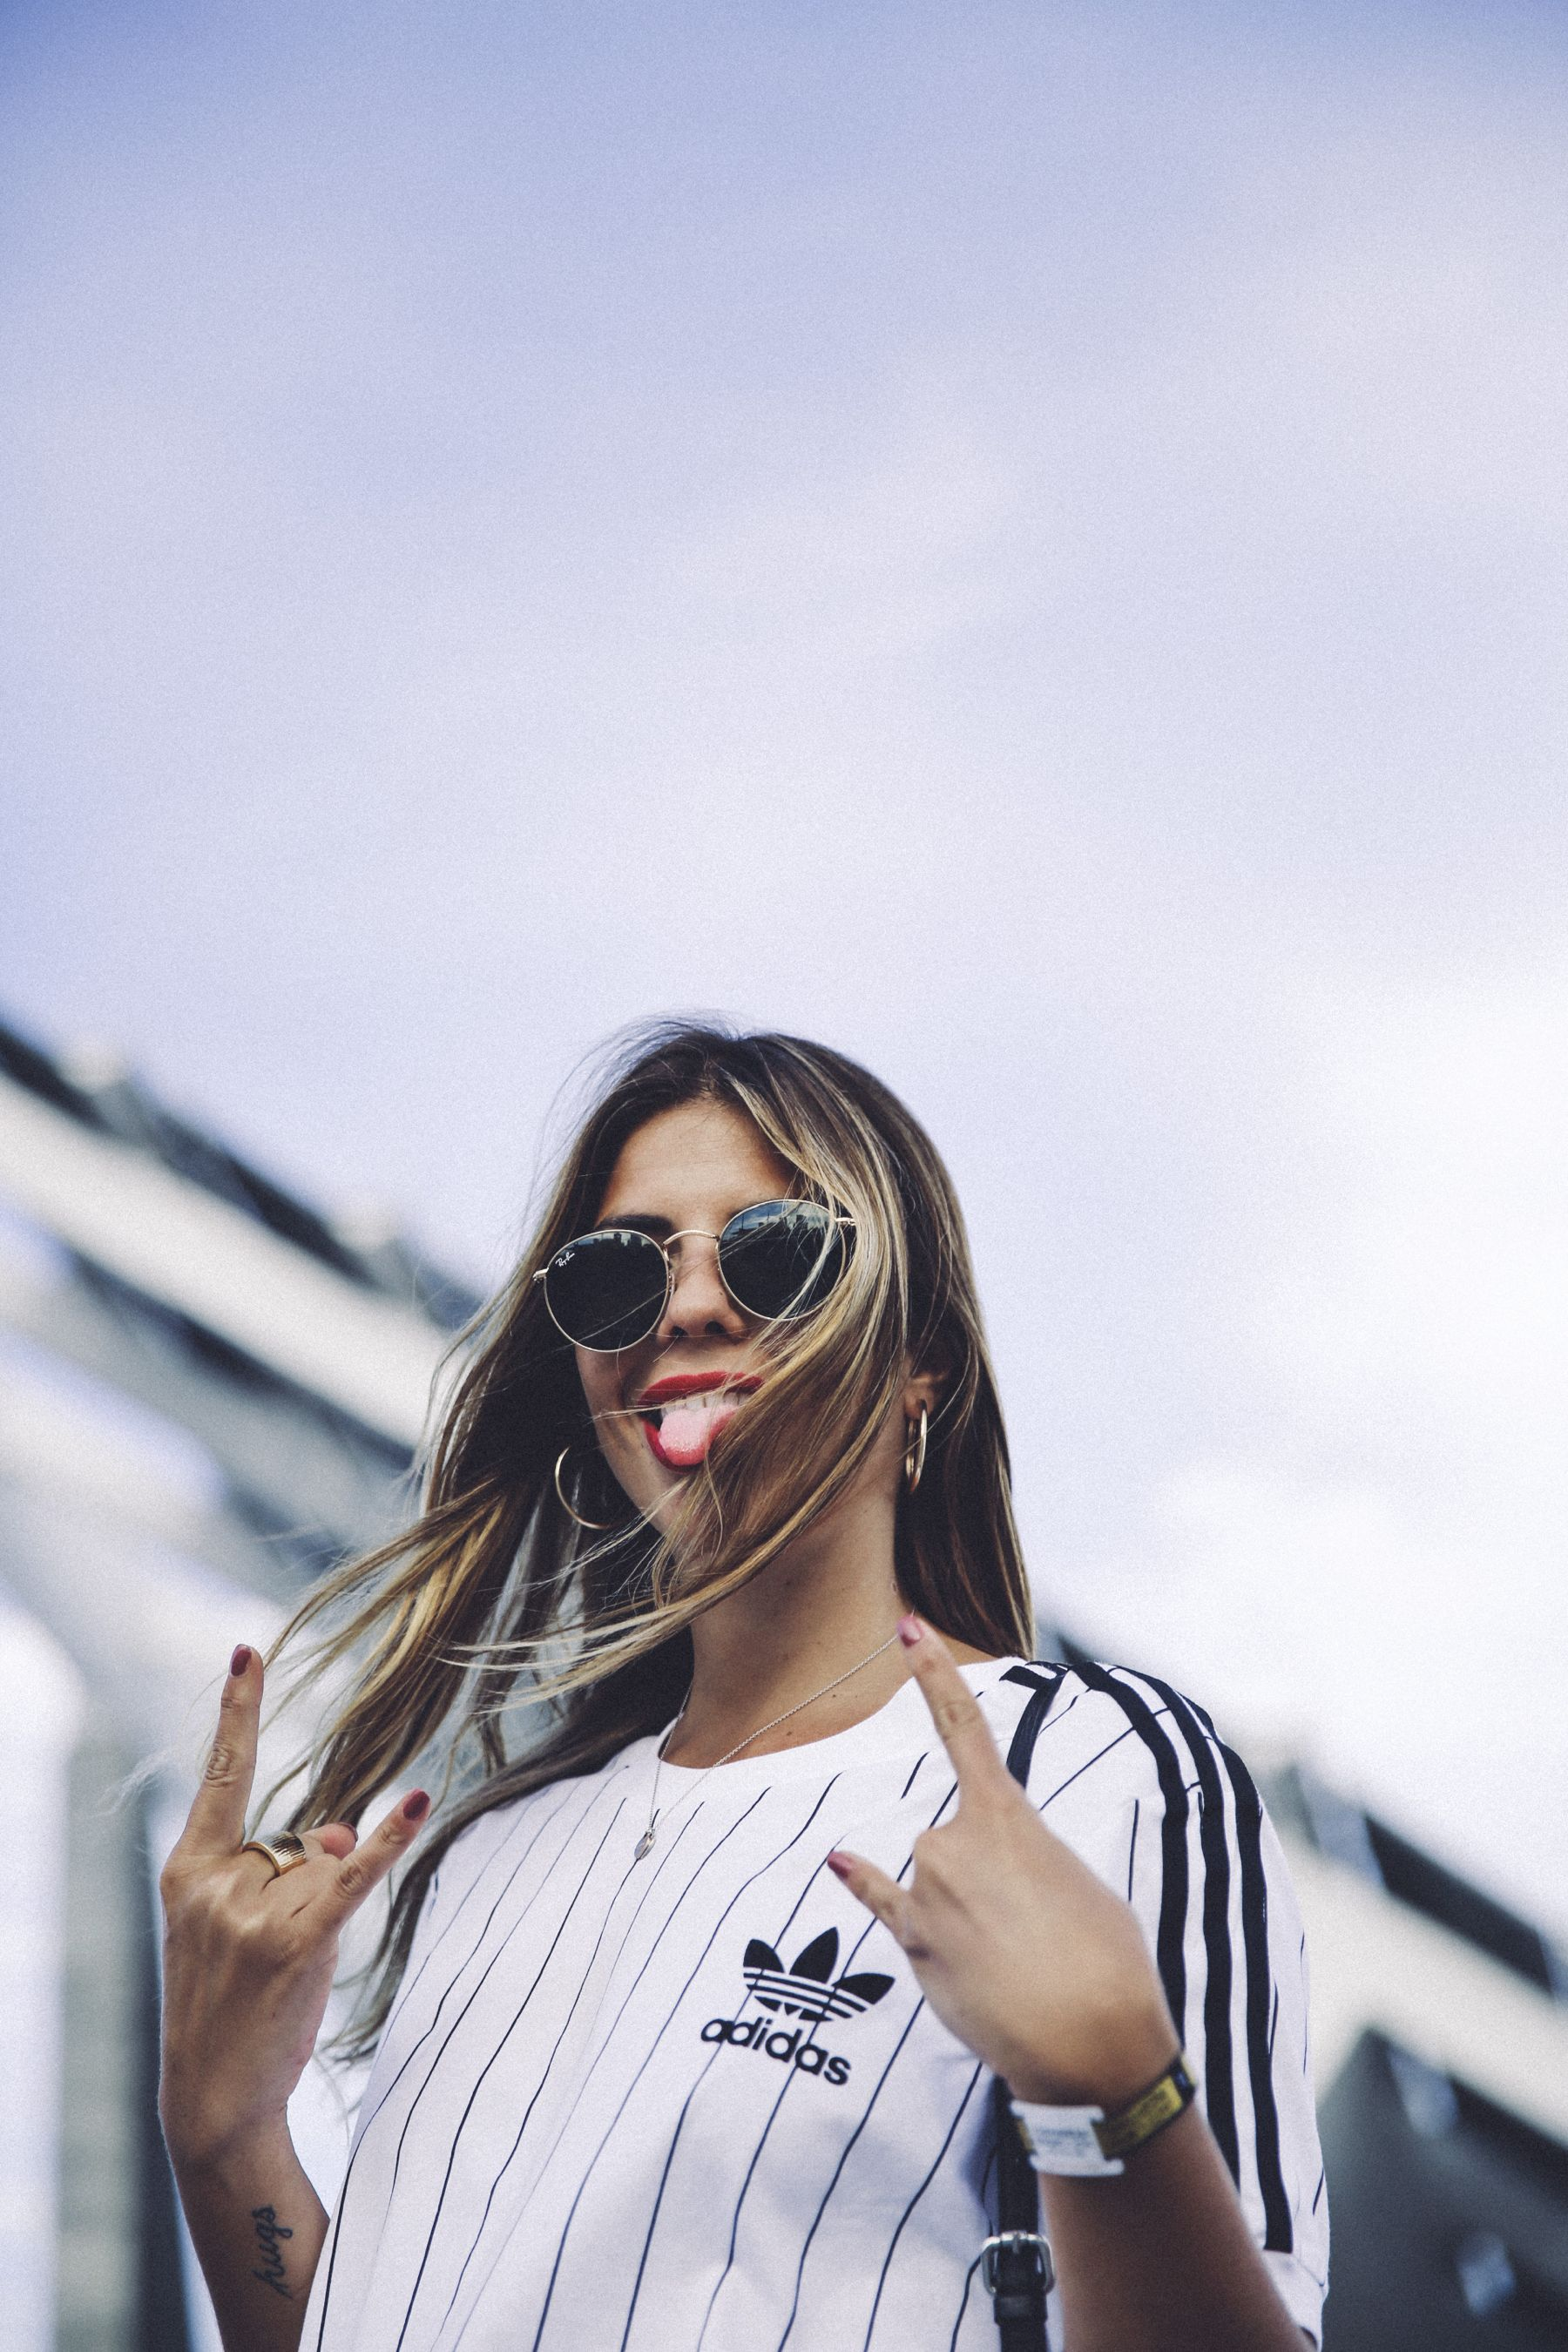 outfit look primavera spring street style trendy taste inspiration falda skirt cuero leather zara adidas originals t-shirt camiseta rayban red lips sneakers zapatillas bolso flecos fringes bag_2